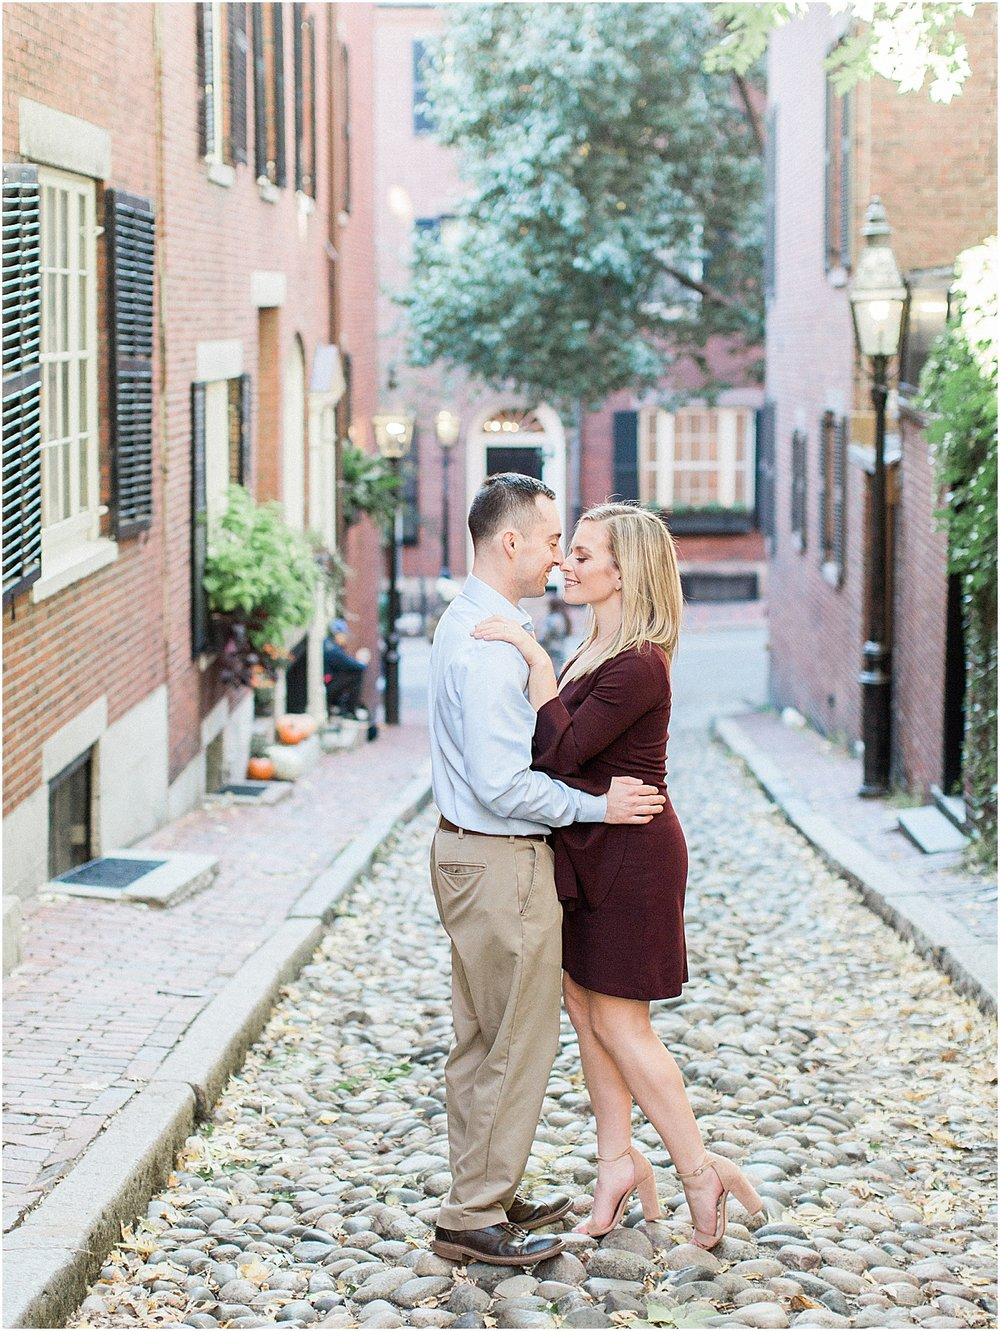 jenny_jared_beacon_hill_acorn_street_seaport_engagement_fall_cape_cod_boston_wedding_photographer_meredith_jane_photography_photo_1521.jpg